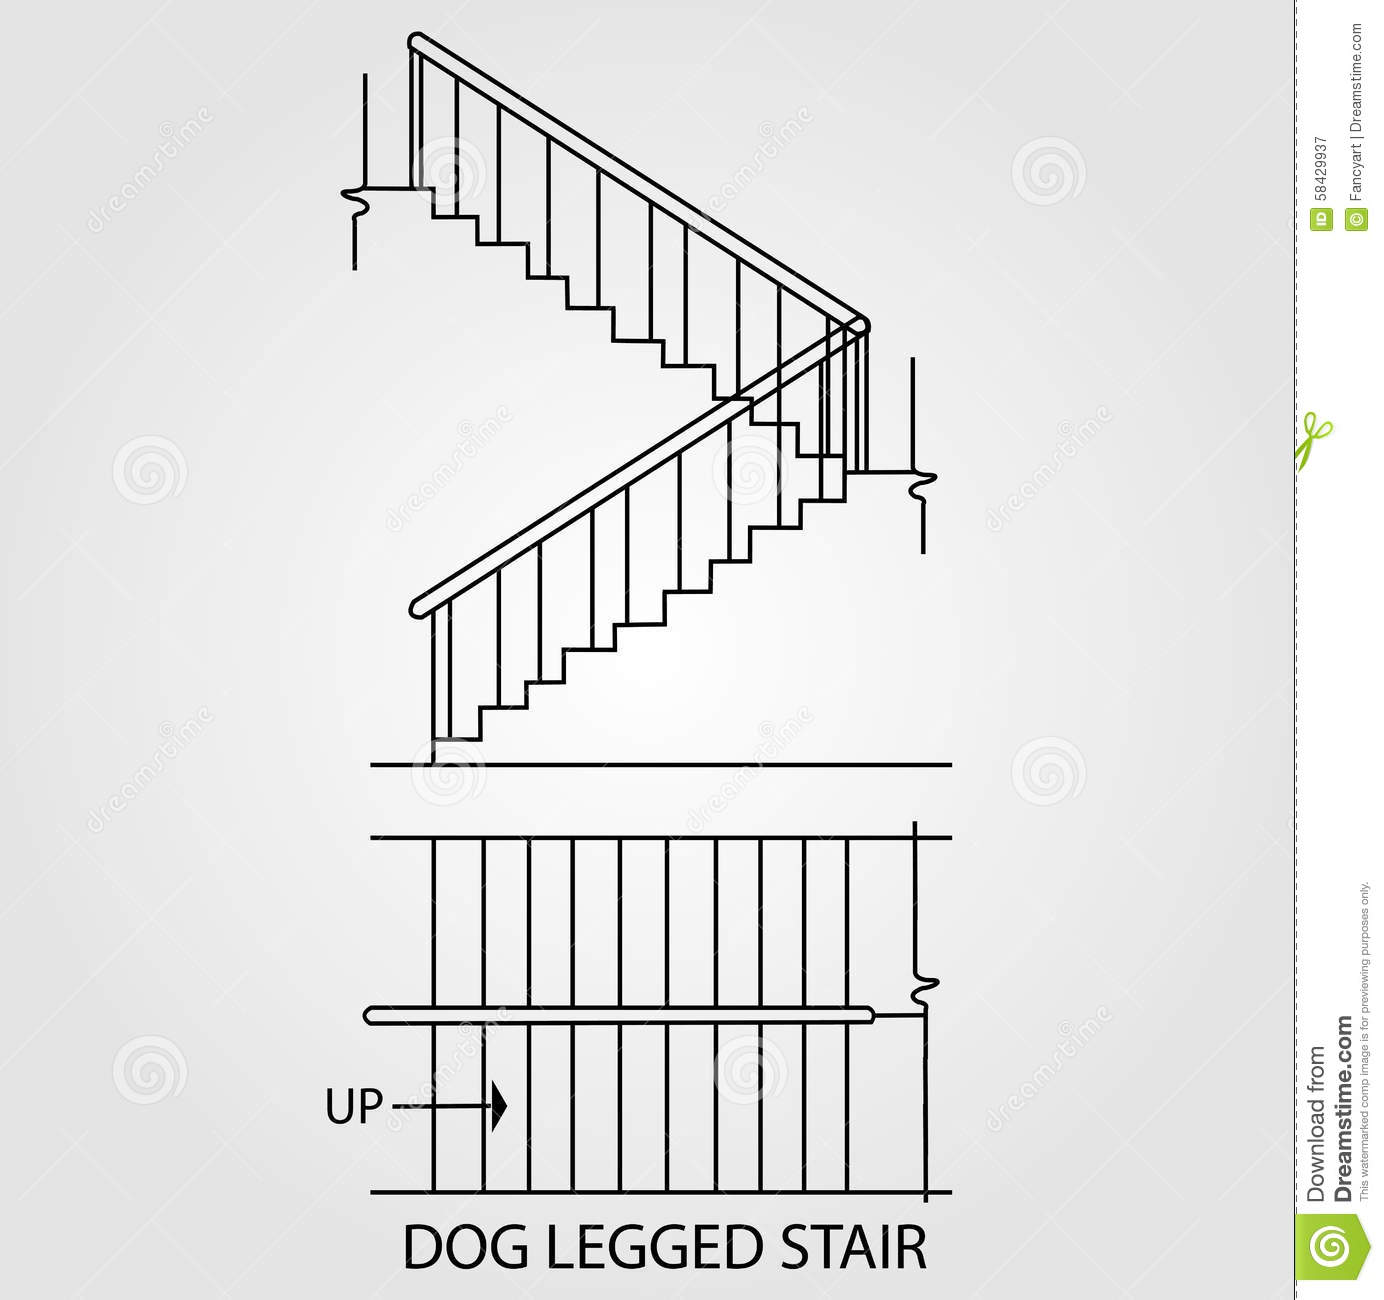 Top view and front view of a dog legged stair